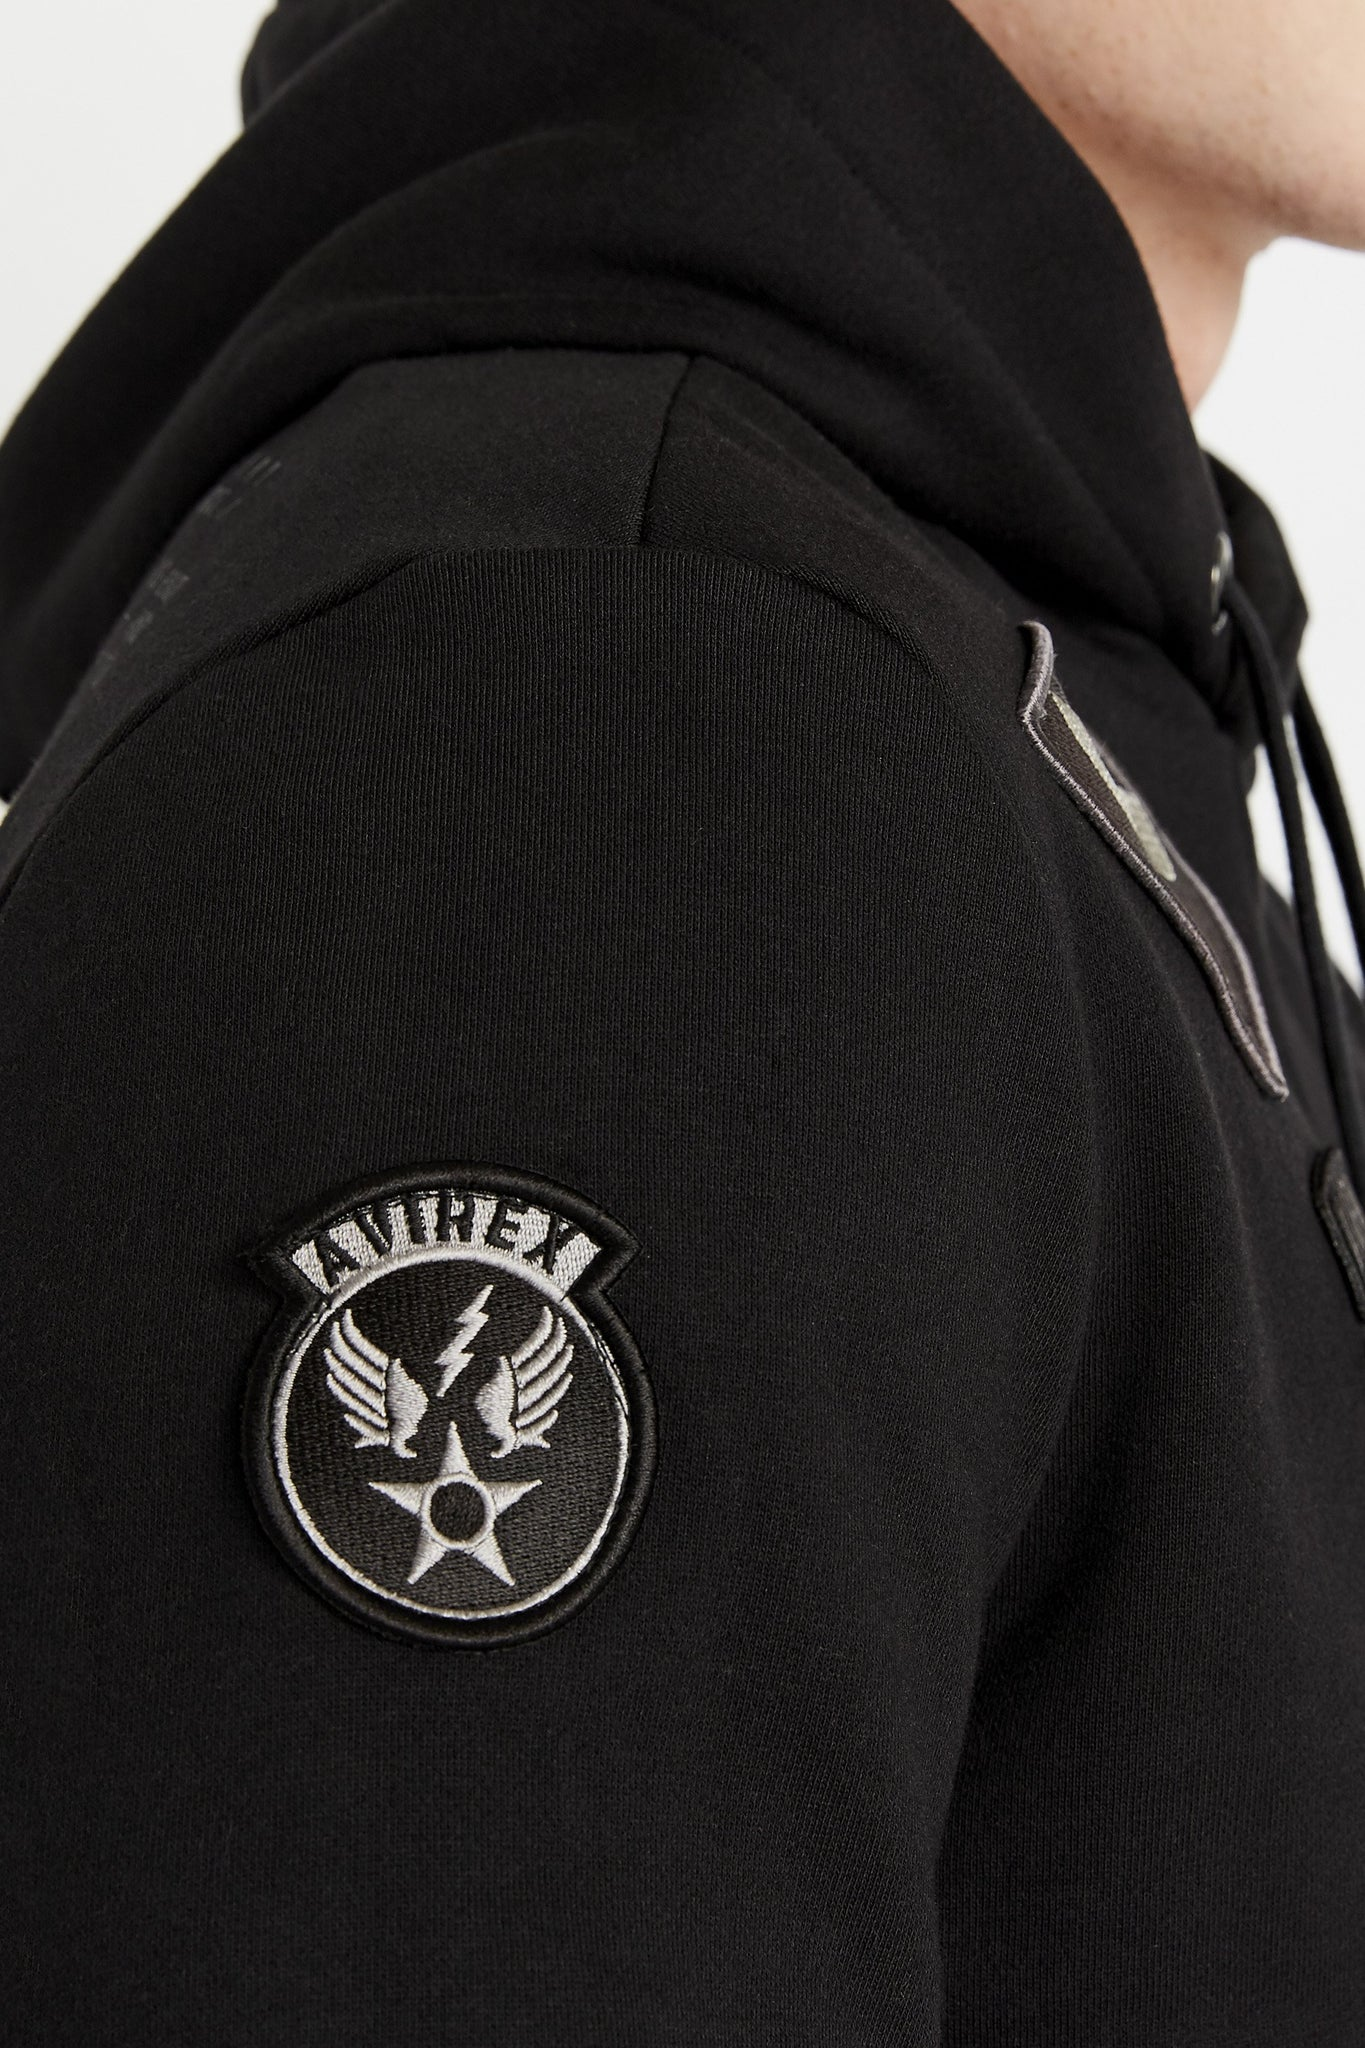 Detailed view of patch on the right sleeve